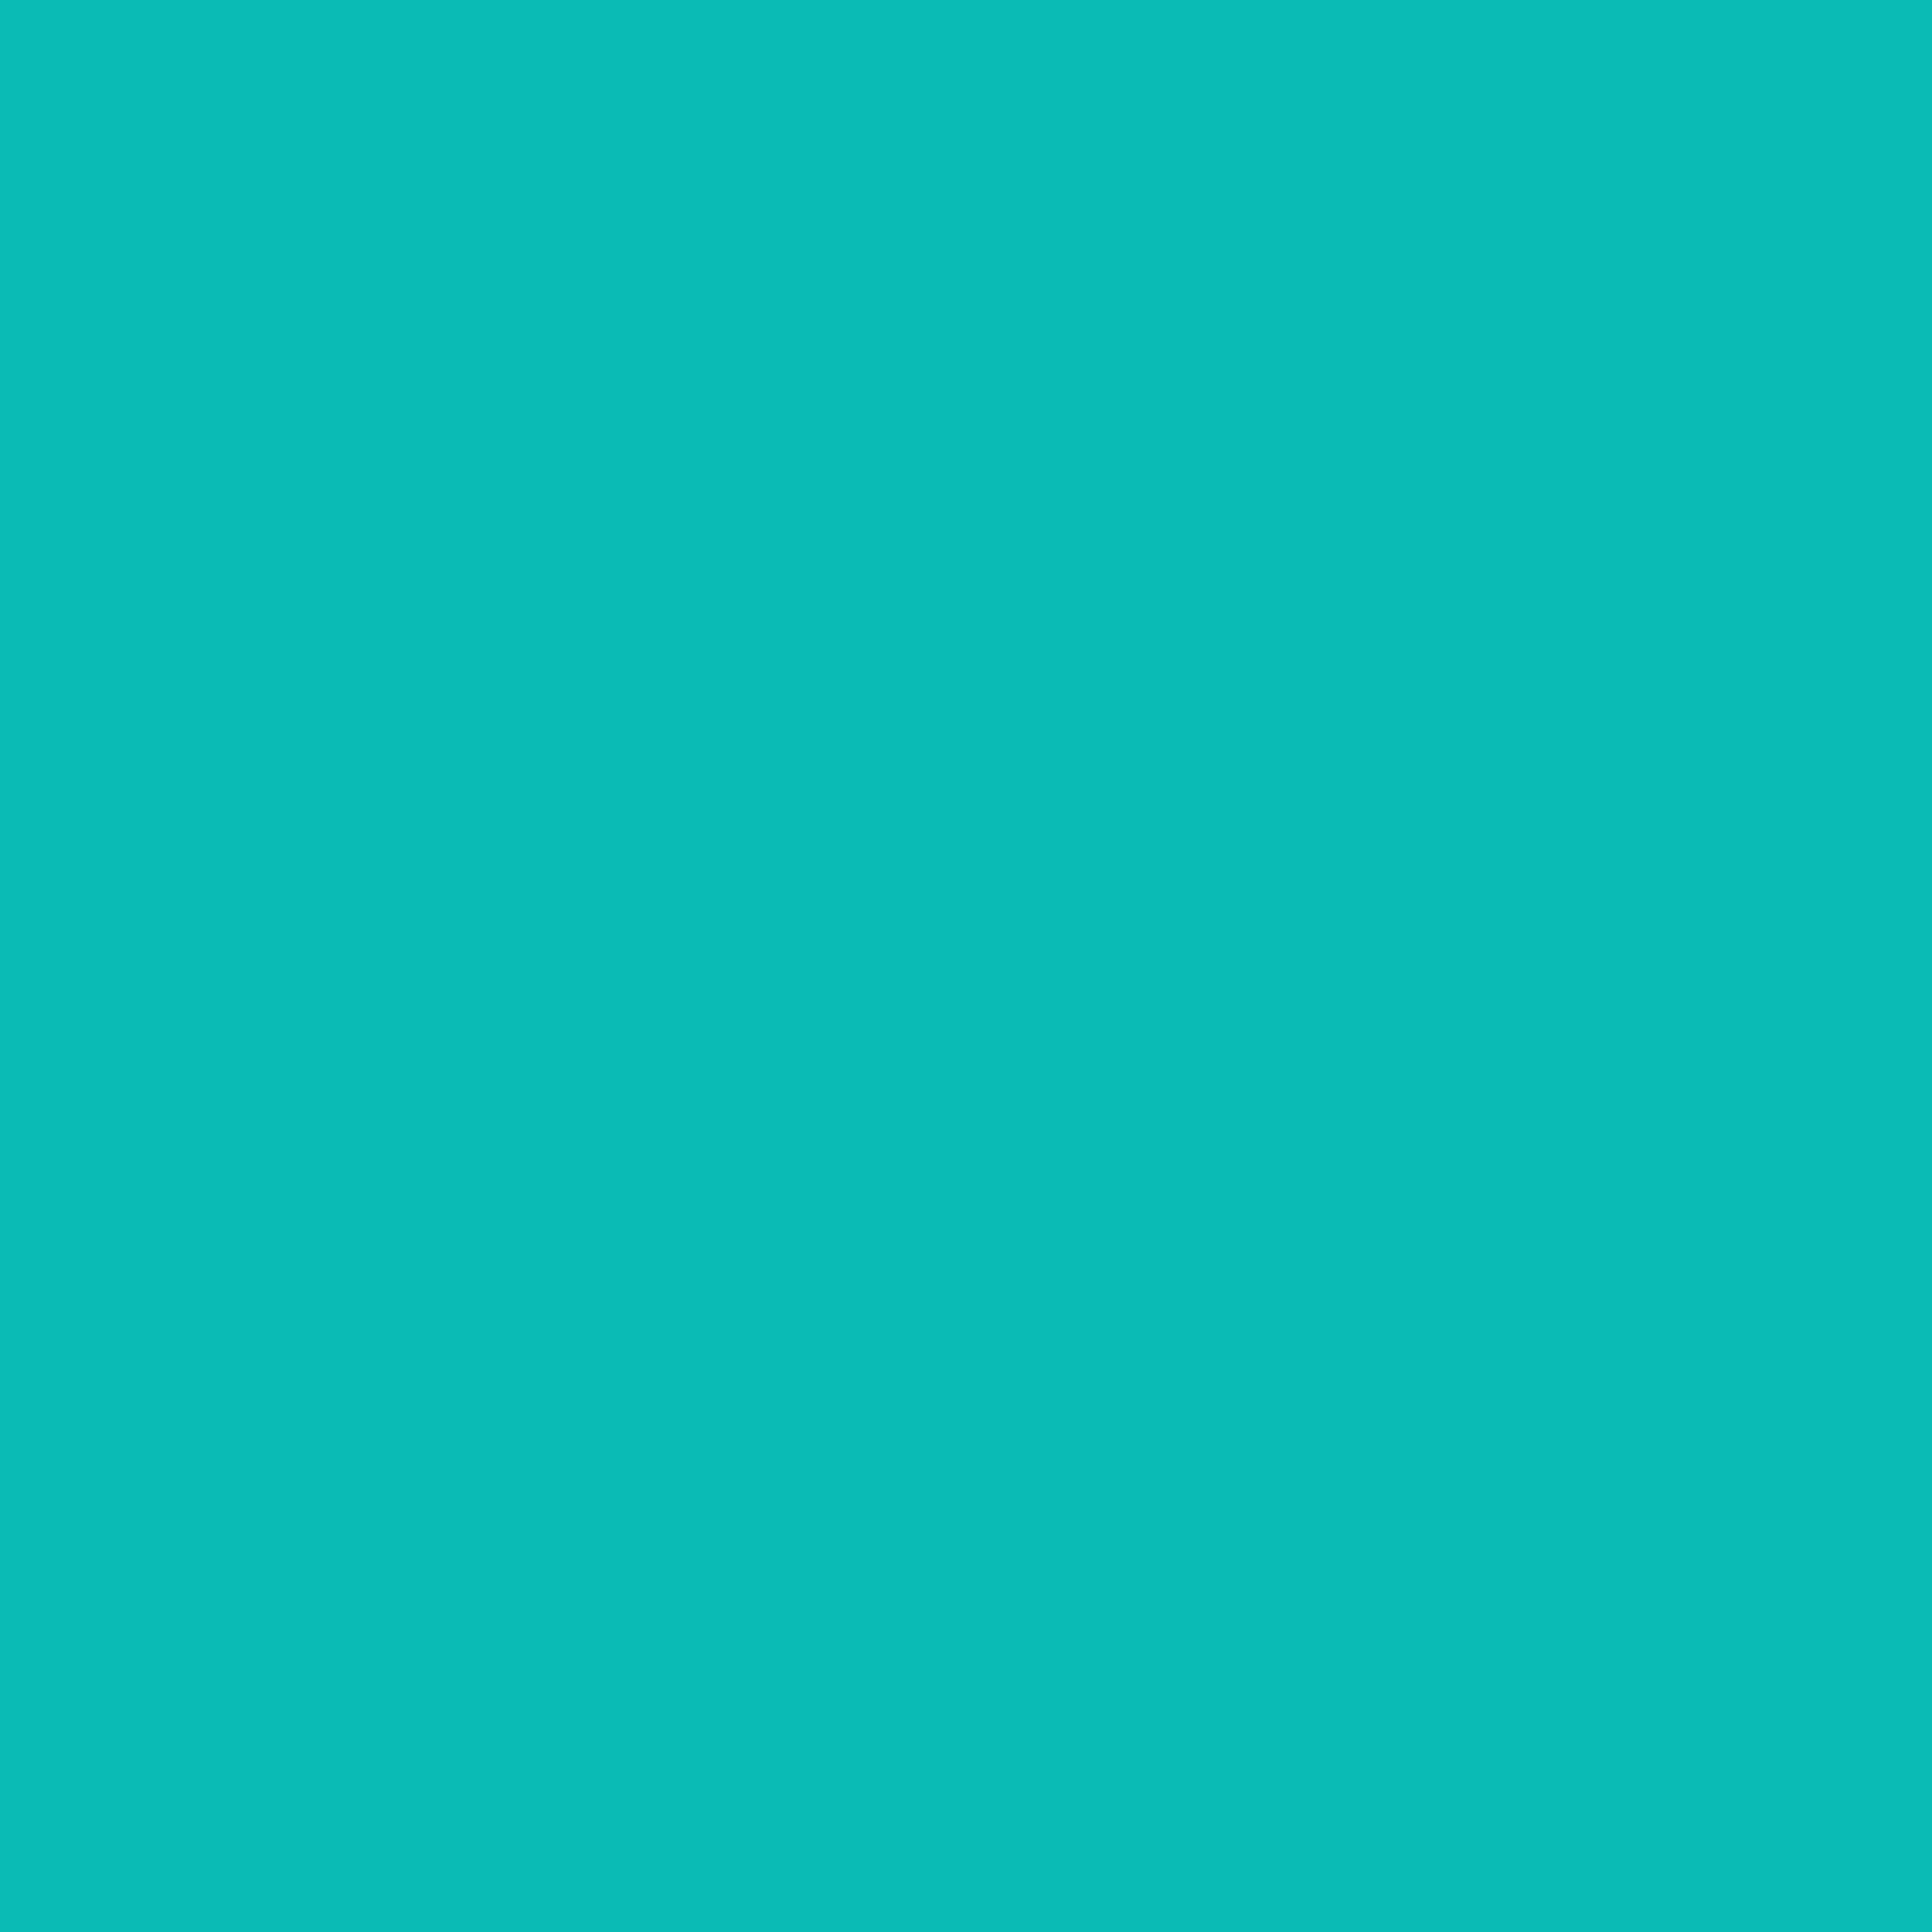 2048x2048 Tiffany Blue Solid Color Background